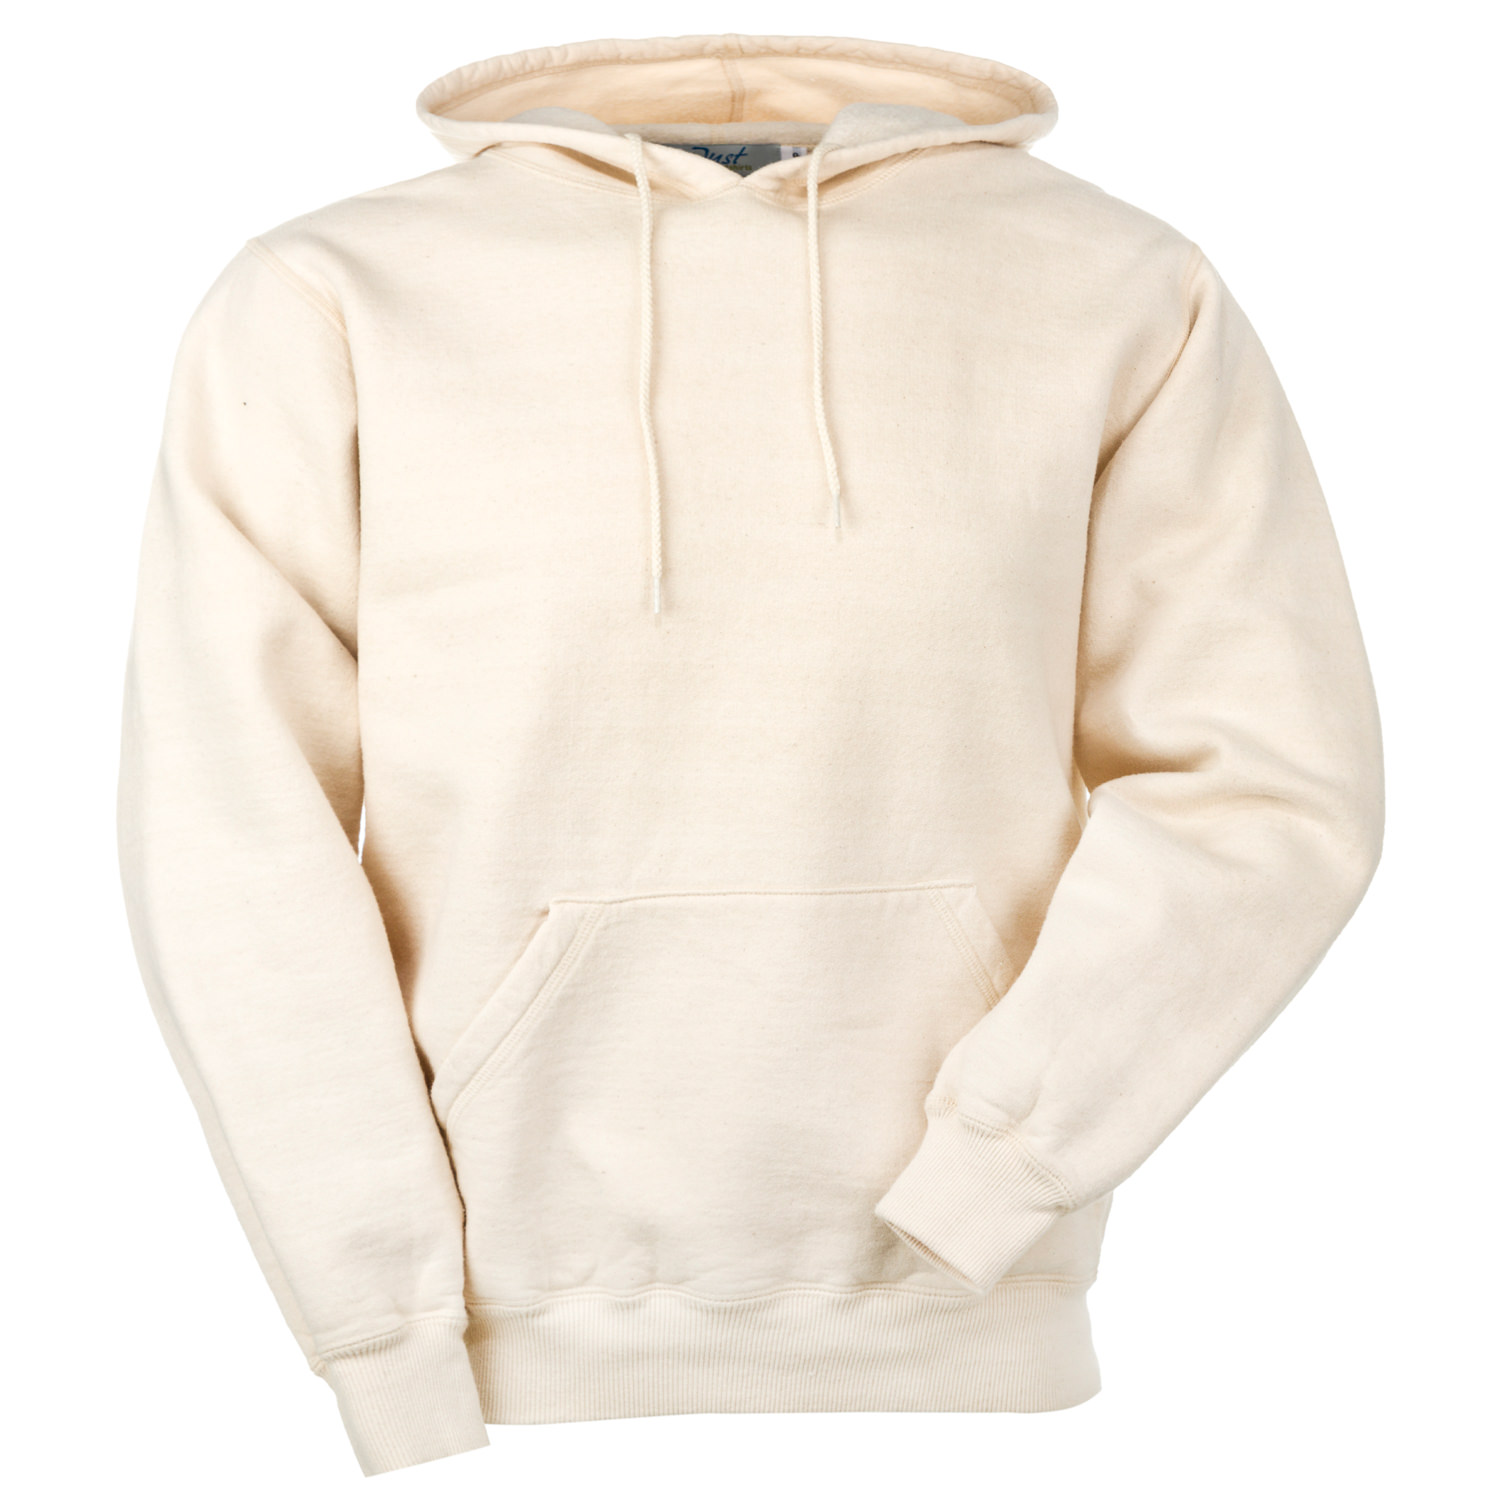 Men's Hoodies | Men's Hooded Sweatshirts Pullover | 100% Cotton ...